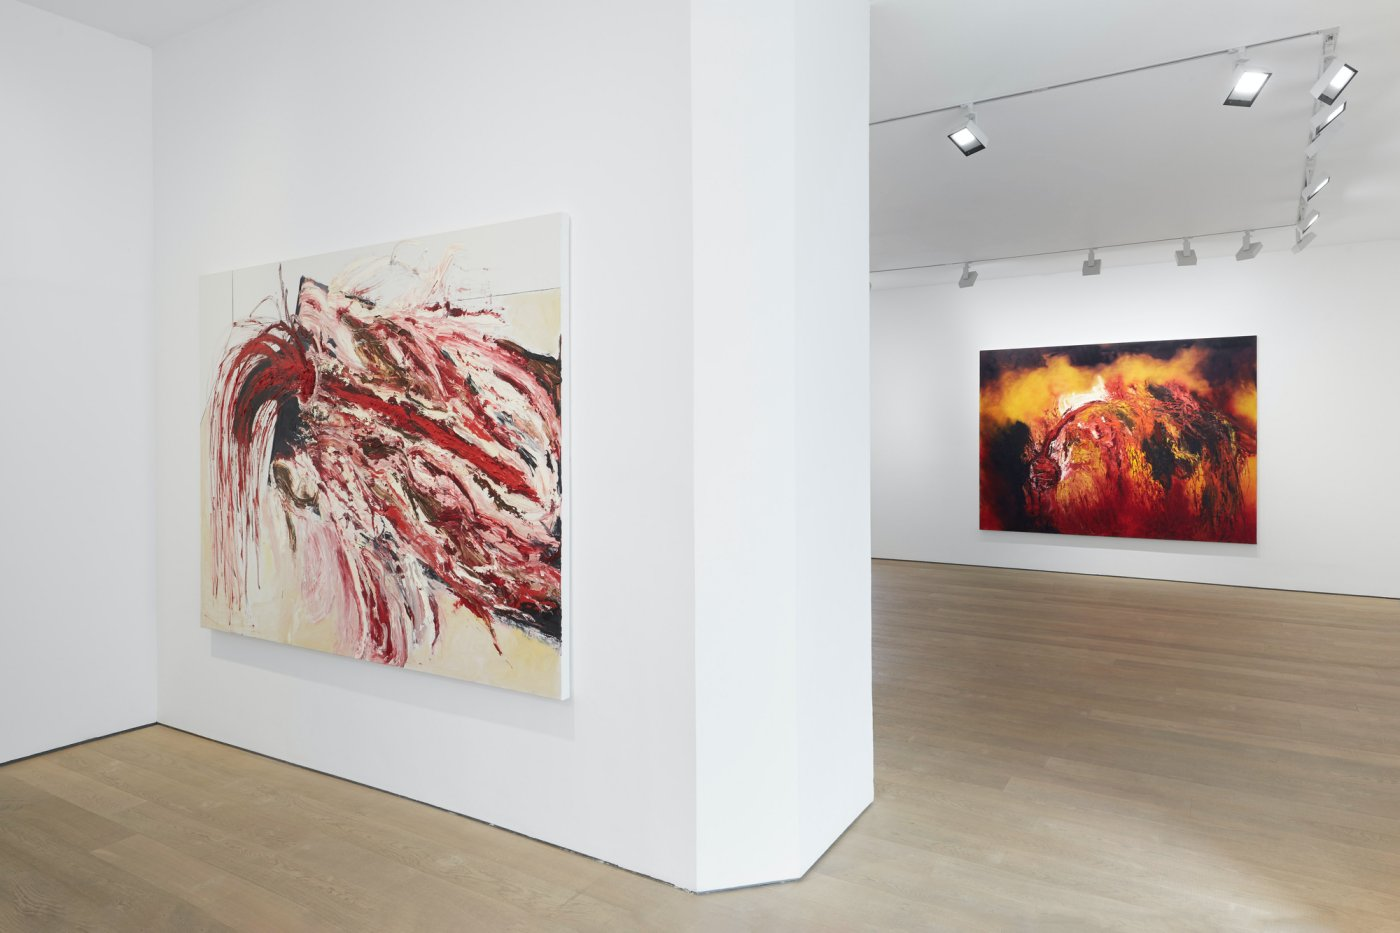 Lisson Gallery 27 Bell St Anish Kapoor 3